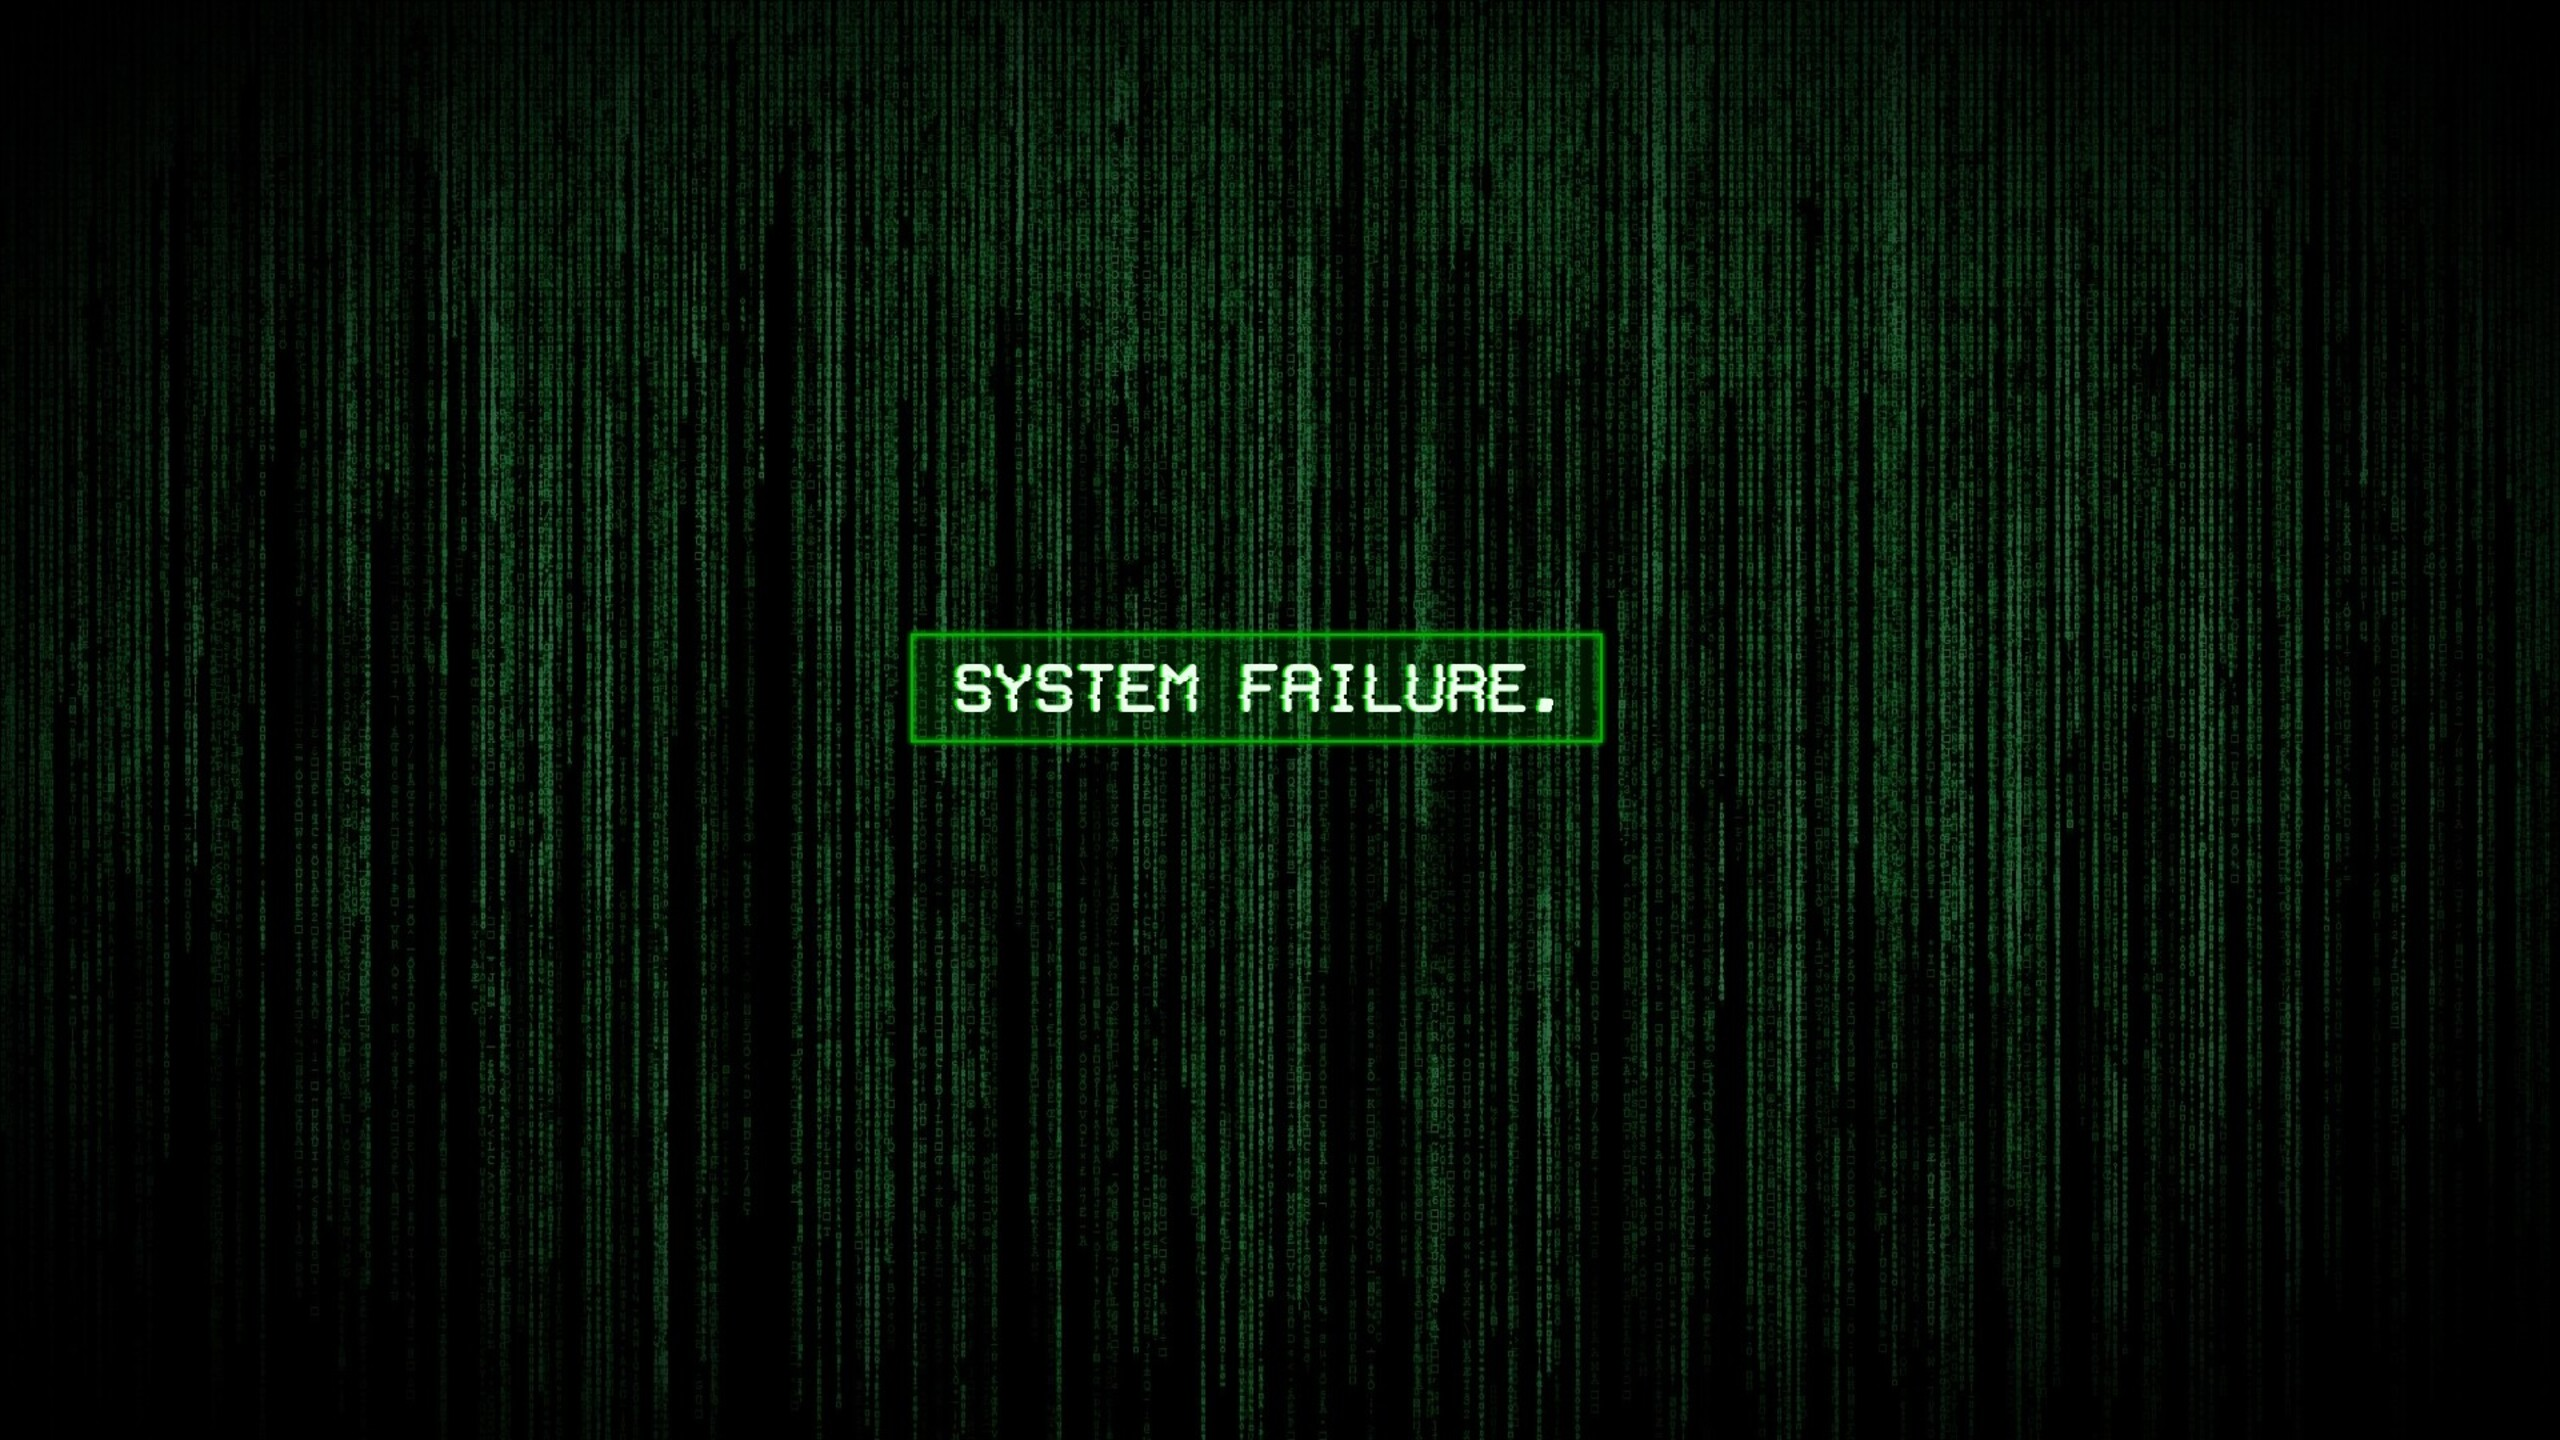 2560x1440 system failure 1440p resolution hd 4k wallpapers, images